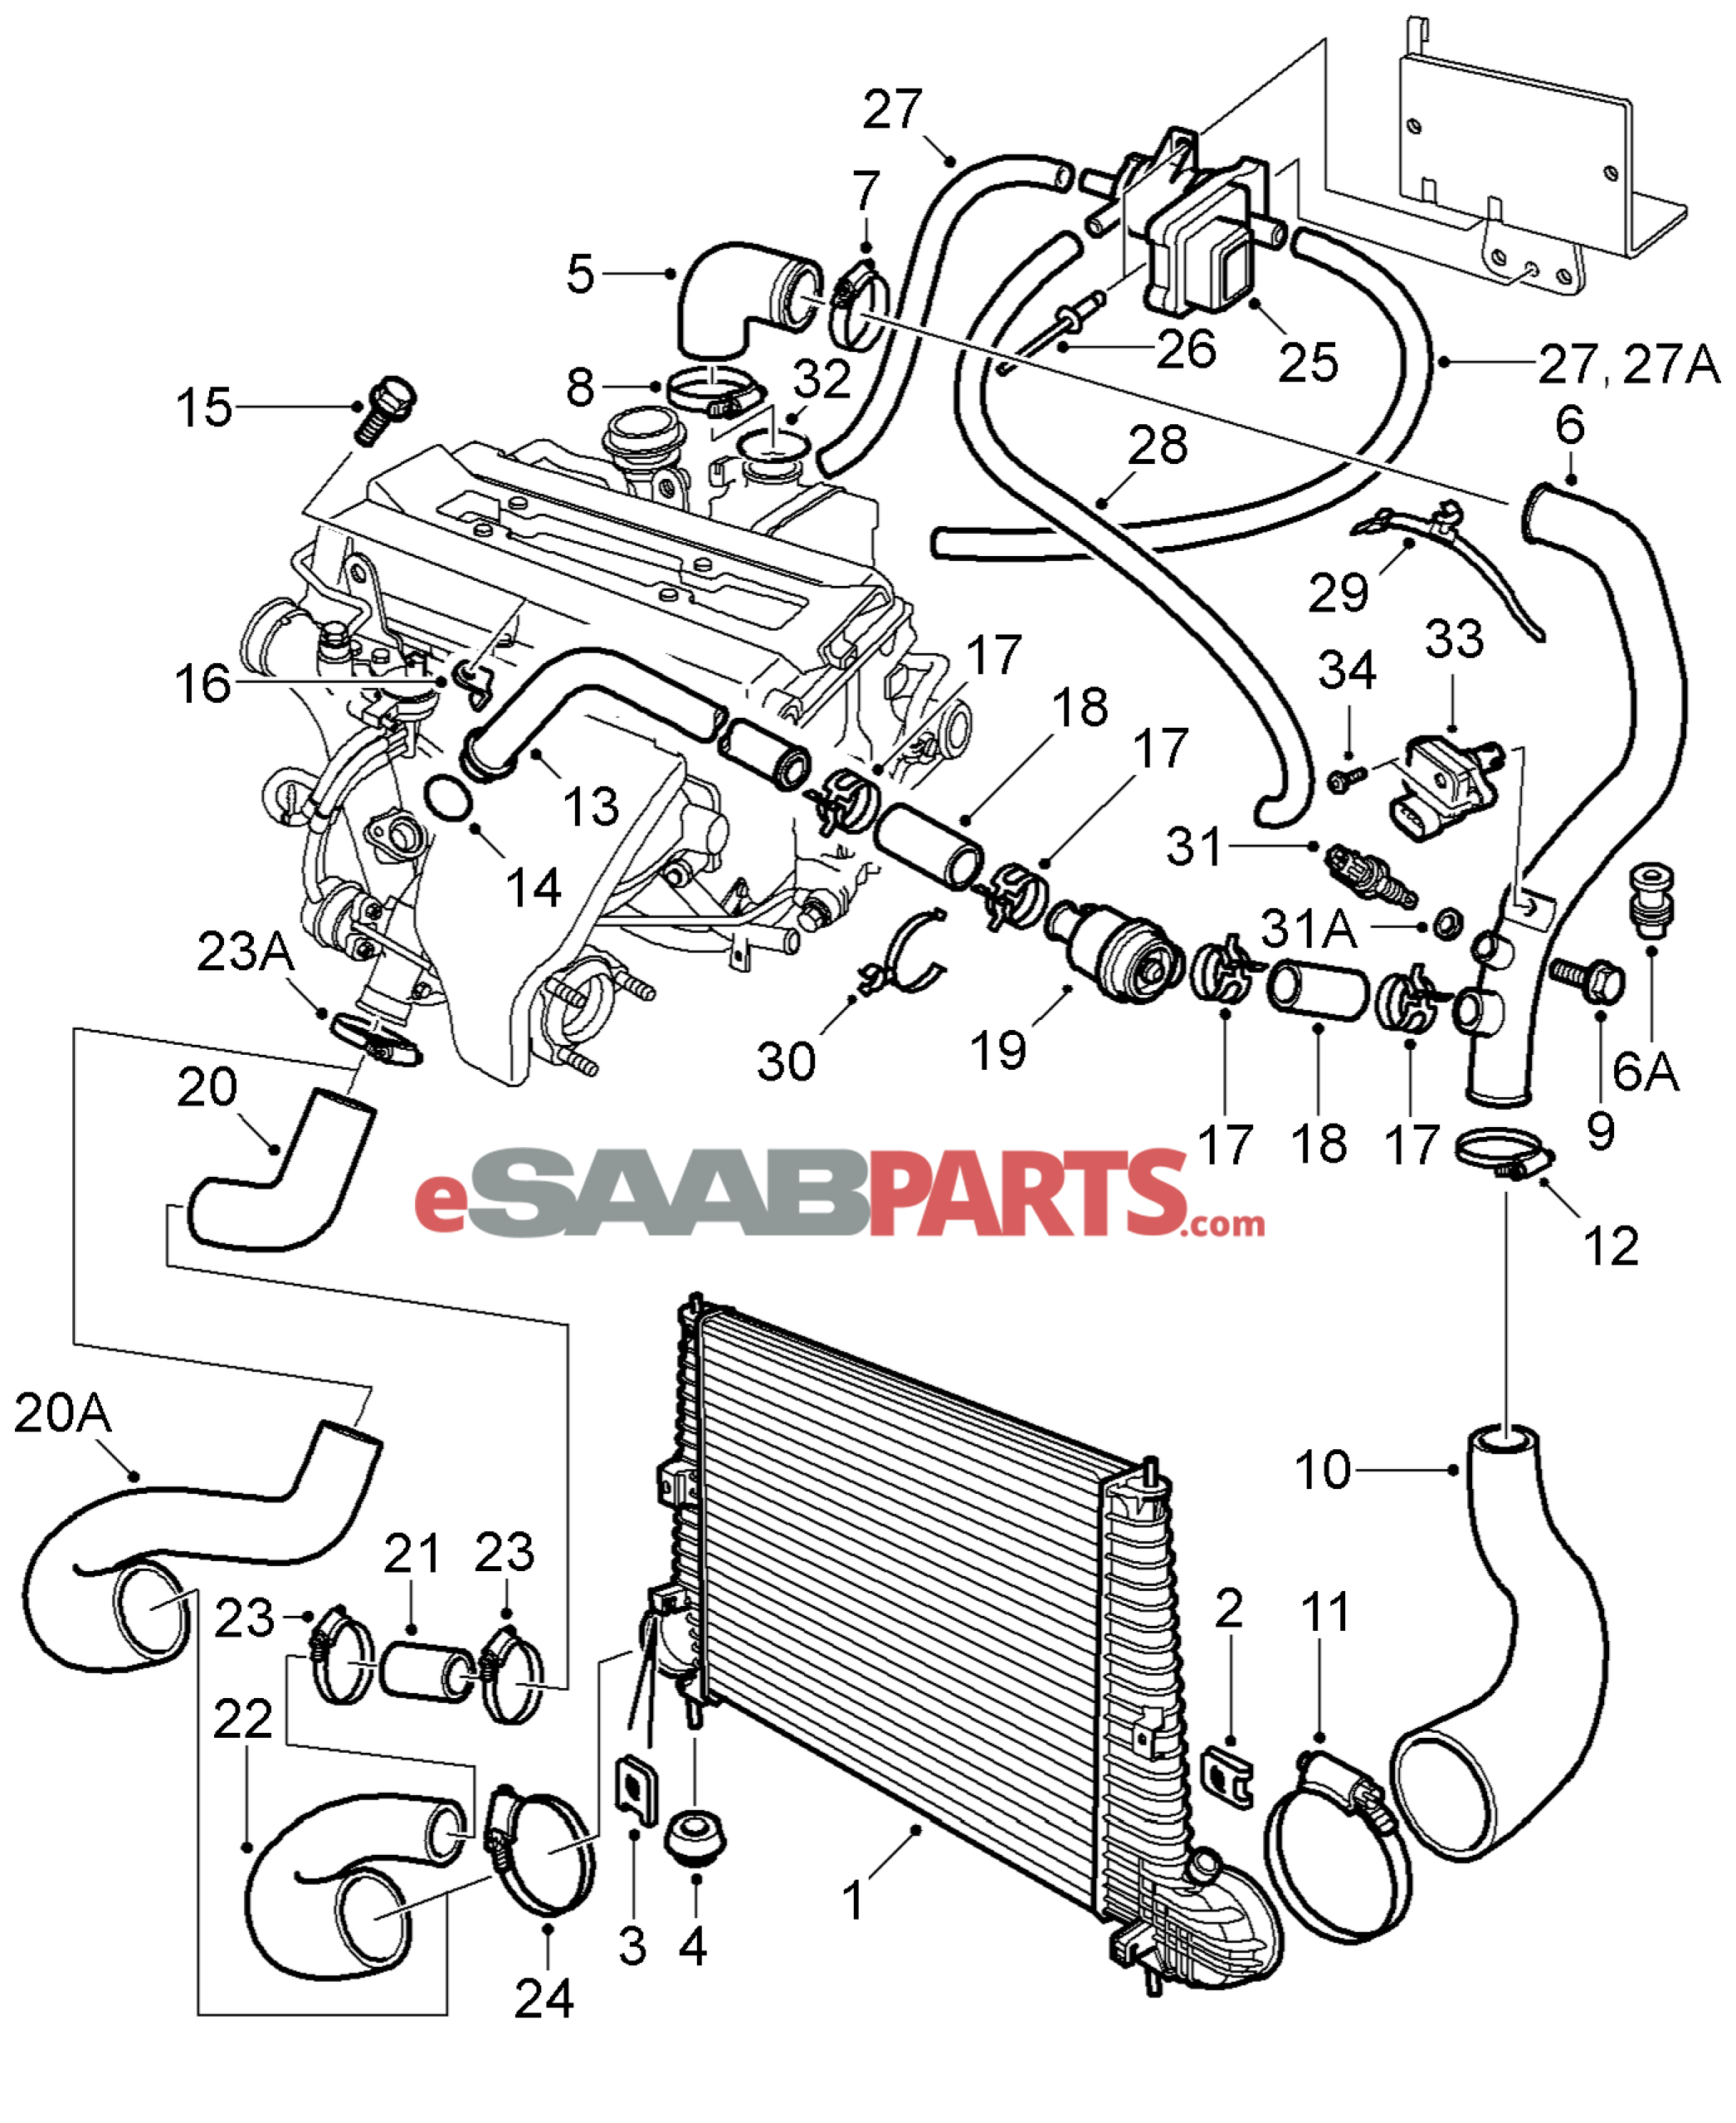 3 5l Acura Firing Order furthermore Diagrama Cadena De Tiempo Nissan Sentra 2002 likewise Starter Location On 2004 Chevy Malibu together with 2008 Ford Edge Bumper Diagram likewise 38g6n Starter Enable Relay Located 1995 Buick Regal. on 2003 chevy colorado